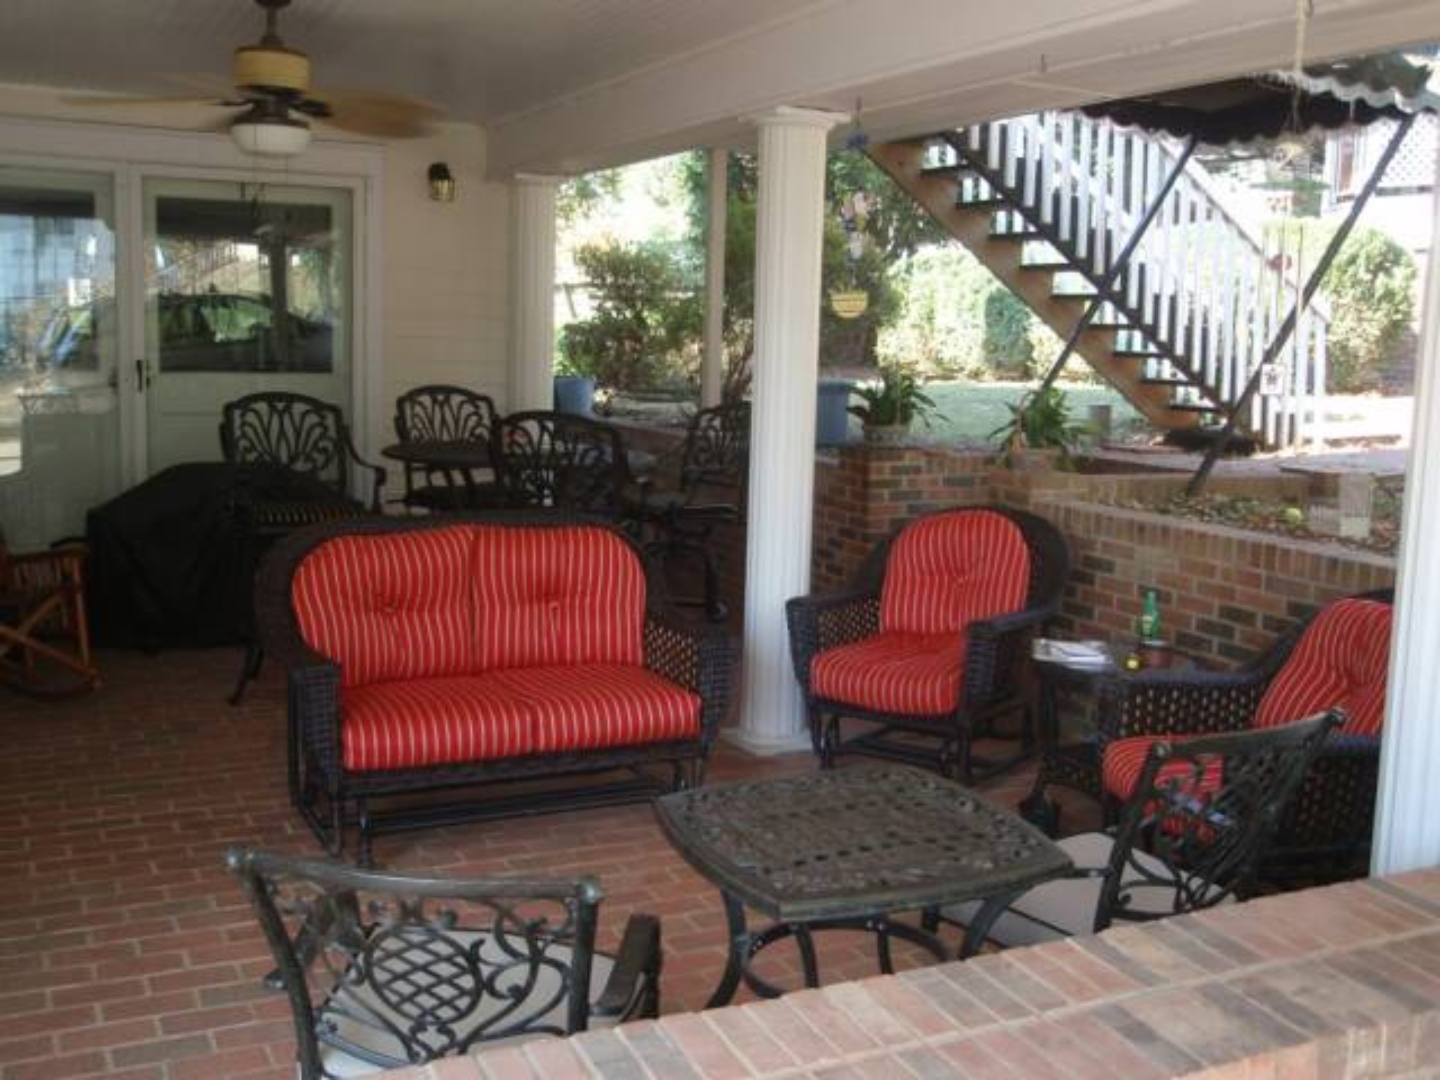 A living room filled with furniture and a fire place at Silver Cliff Inn Bed & Breakfast.